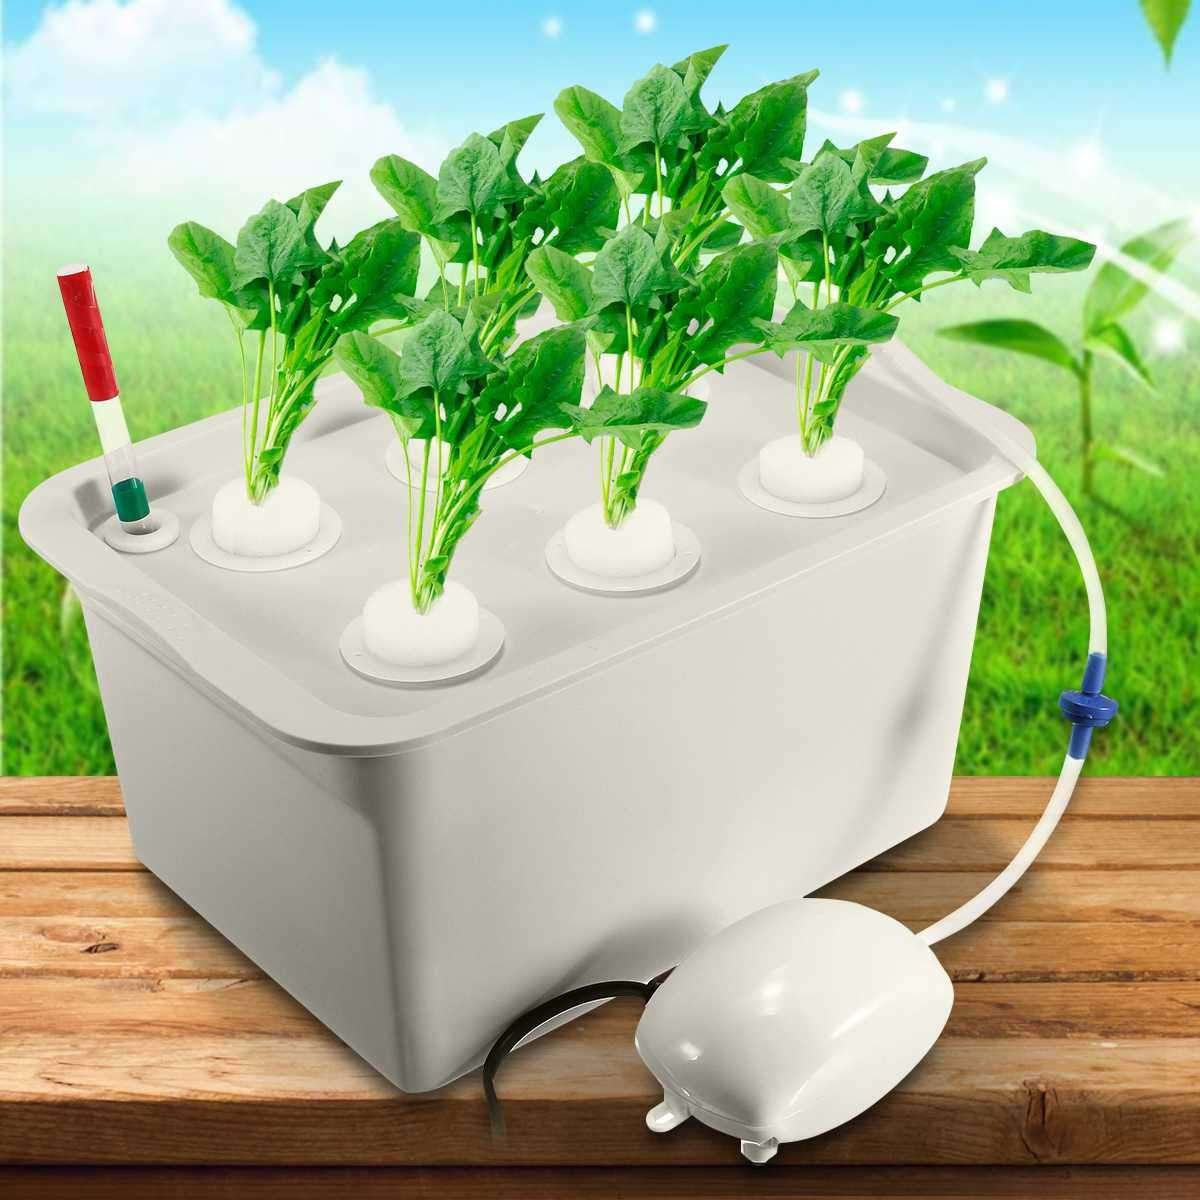 Soilless Indoor Box Planter - Discounts You May Like